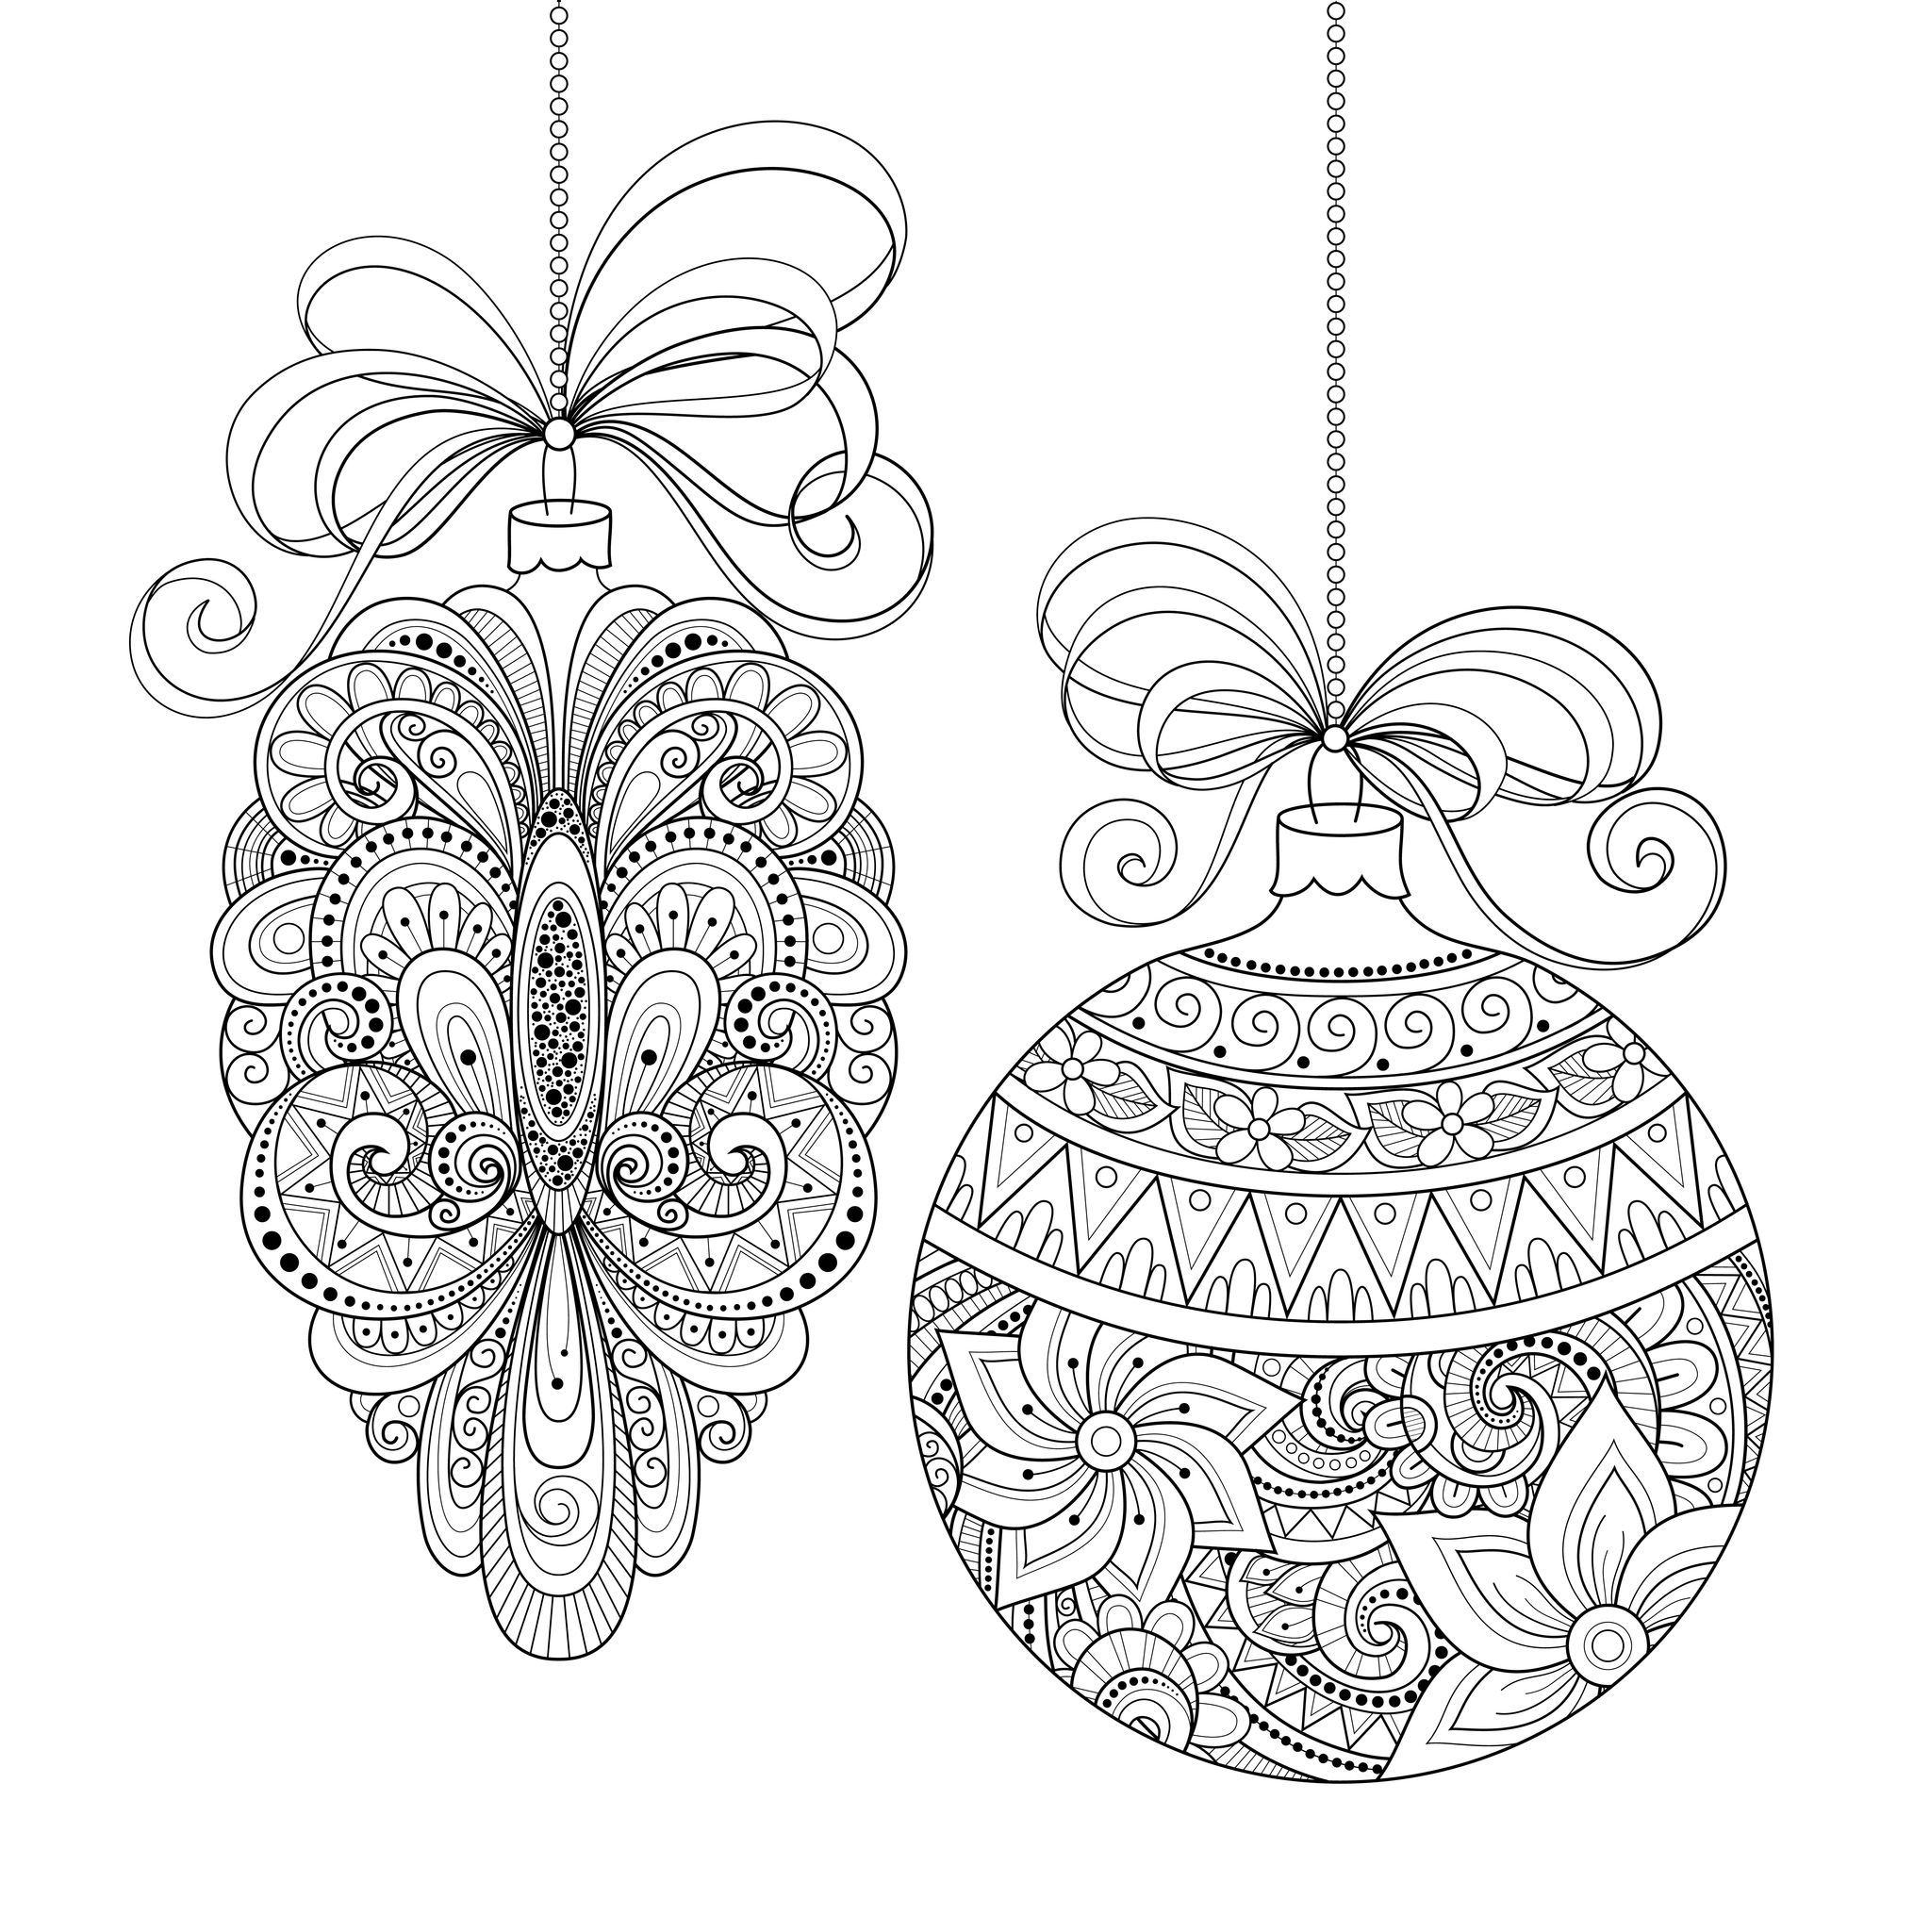 christmas ornaments use this coloring page to make your own greeting cards - Christmas Ornament Coloring Page